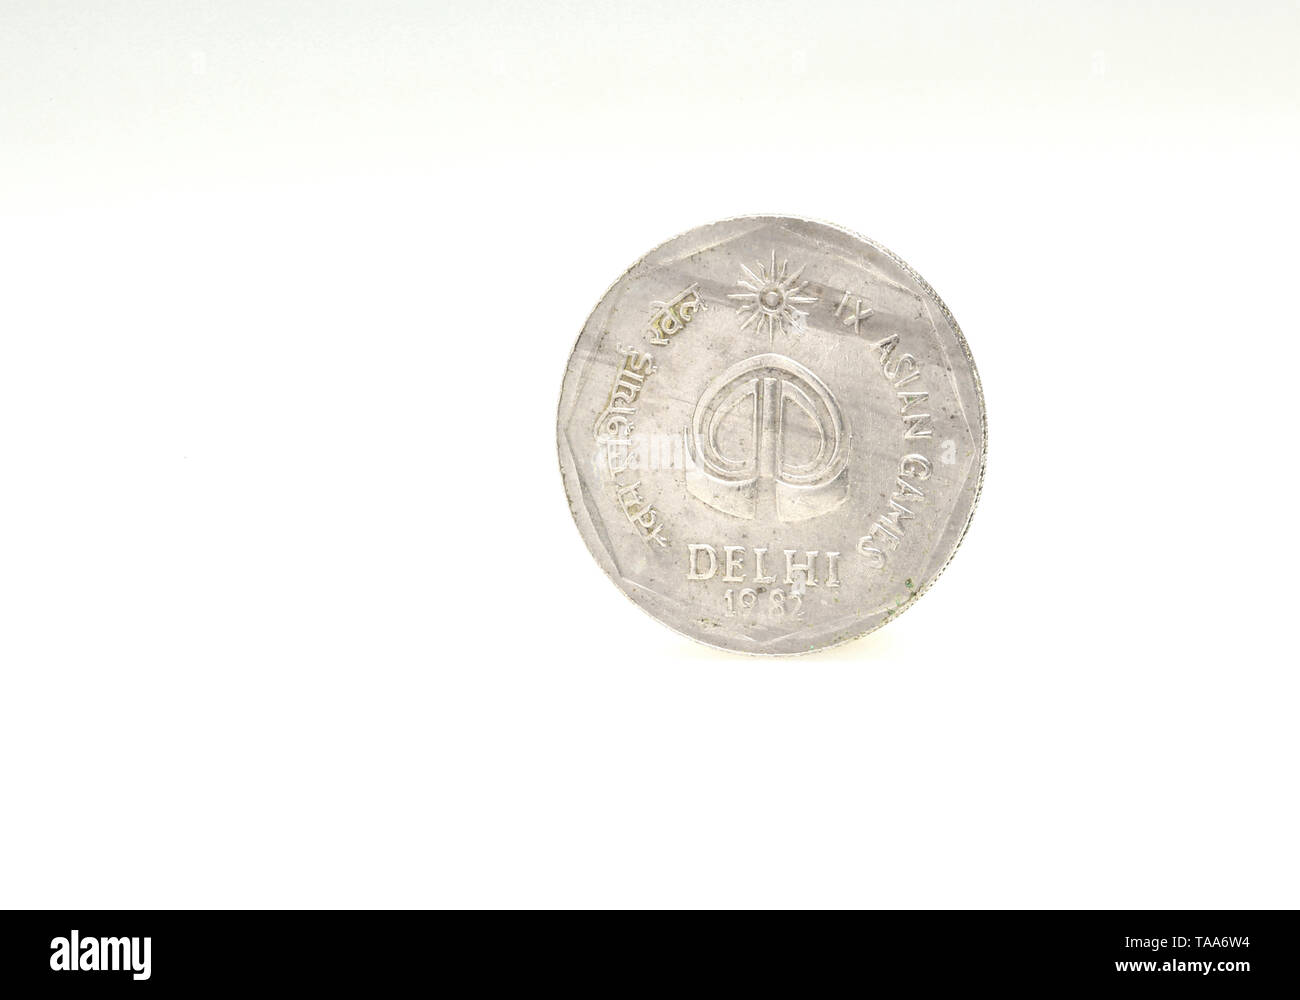 rupee coin on white background, India, Asia, 1982 - Stock Image